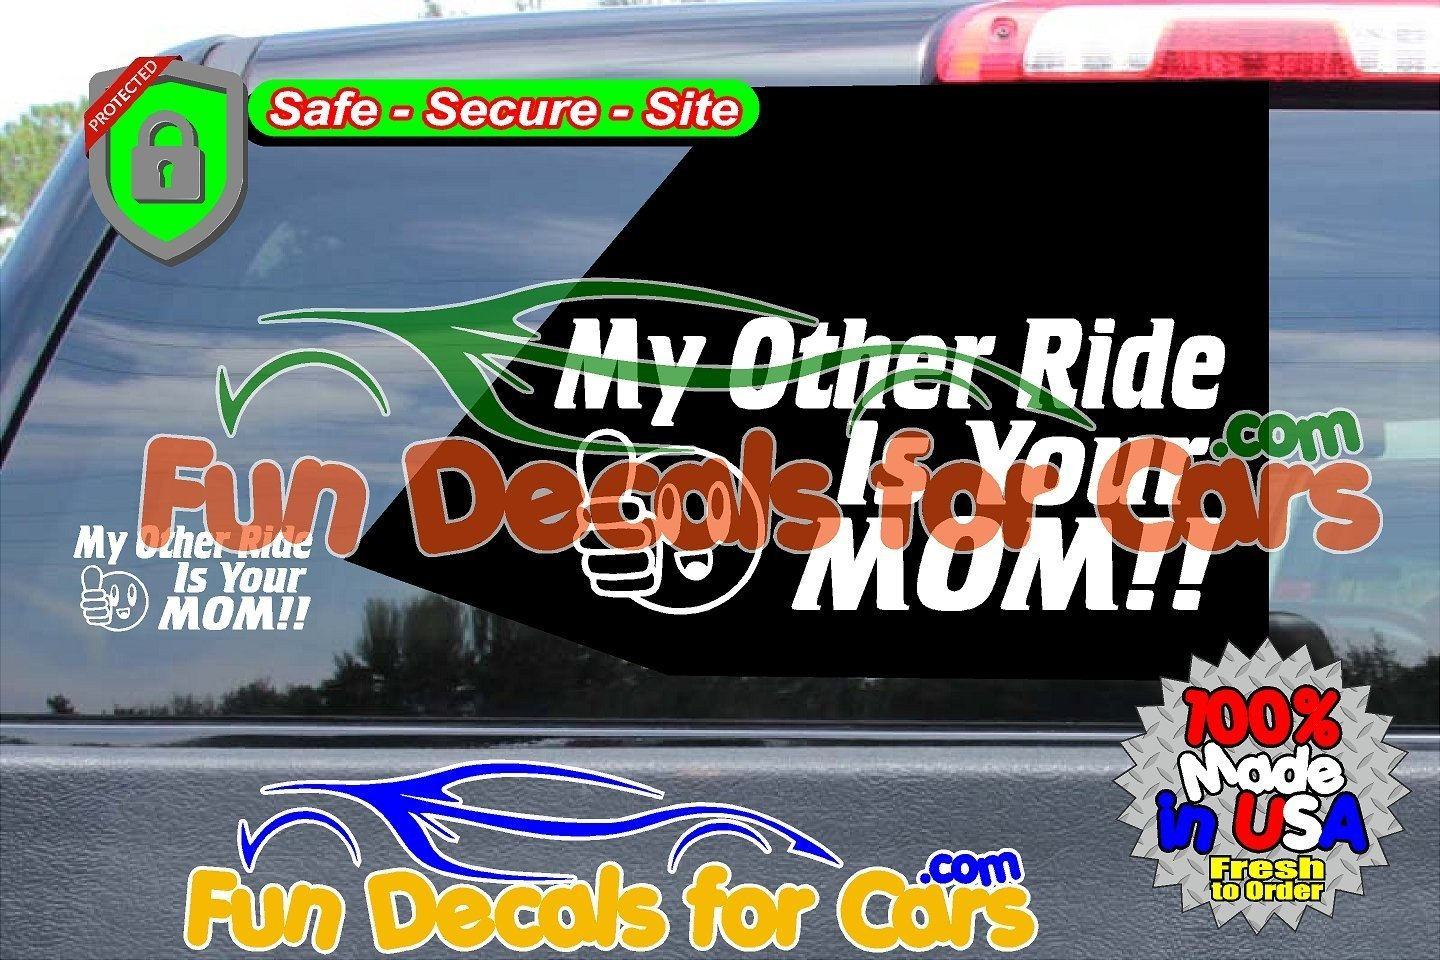 Your Mom Decals